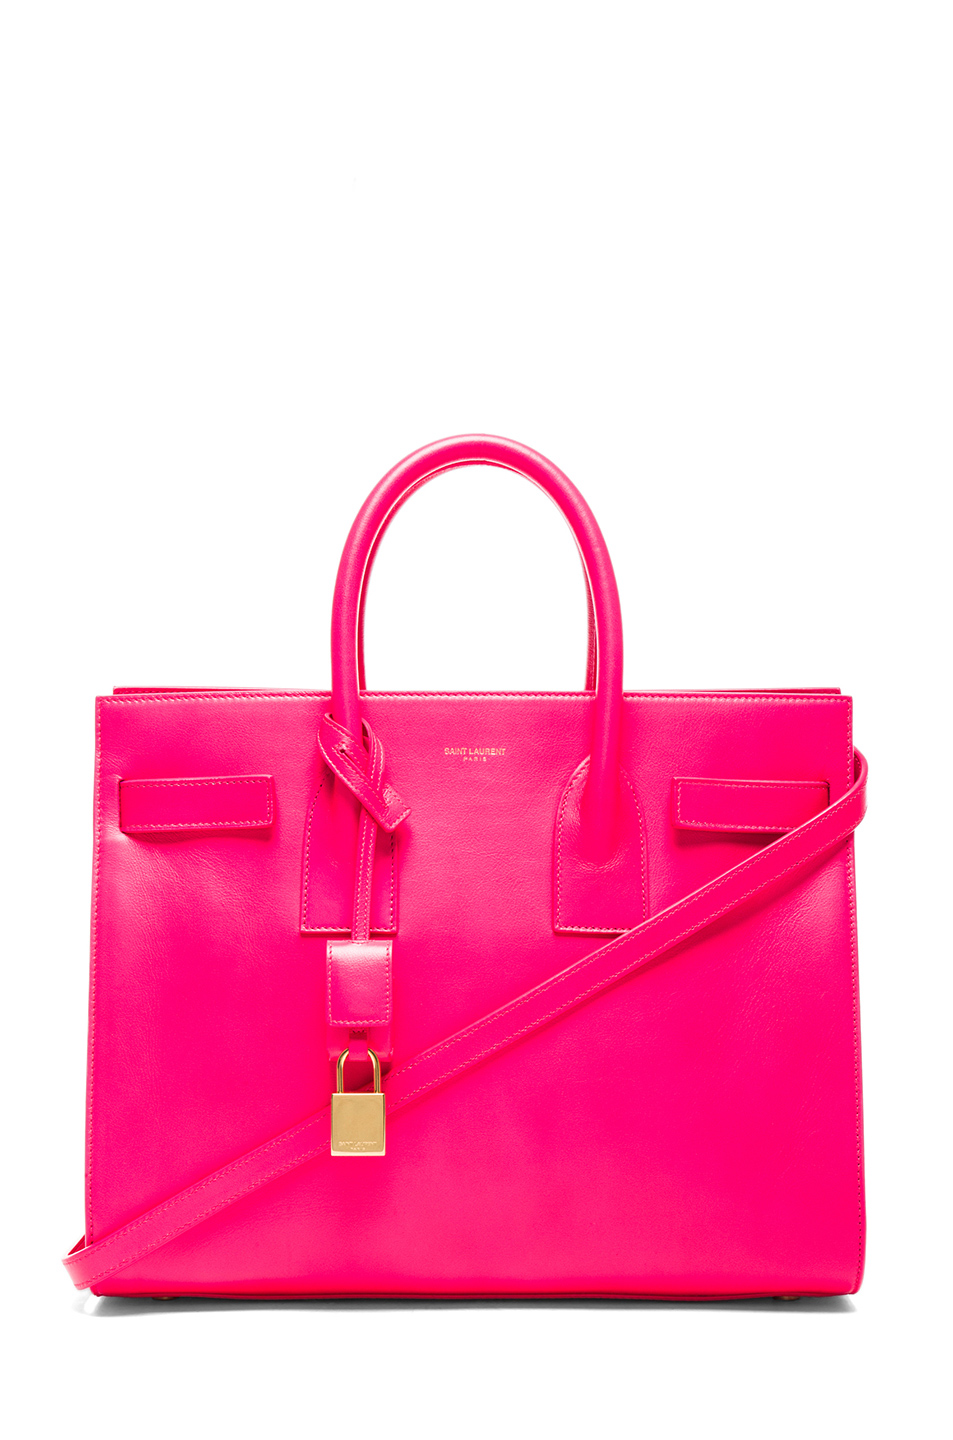 Splurge Du Jour Saint Laurent Small Sac De Carryall Bag In Neon Pink